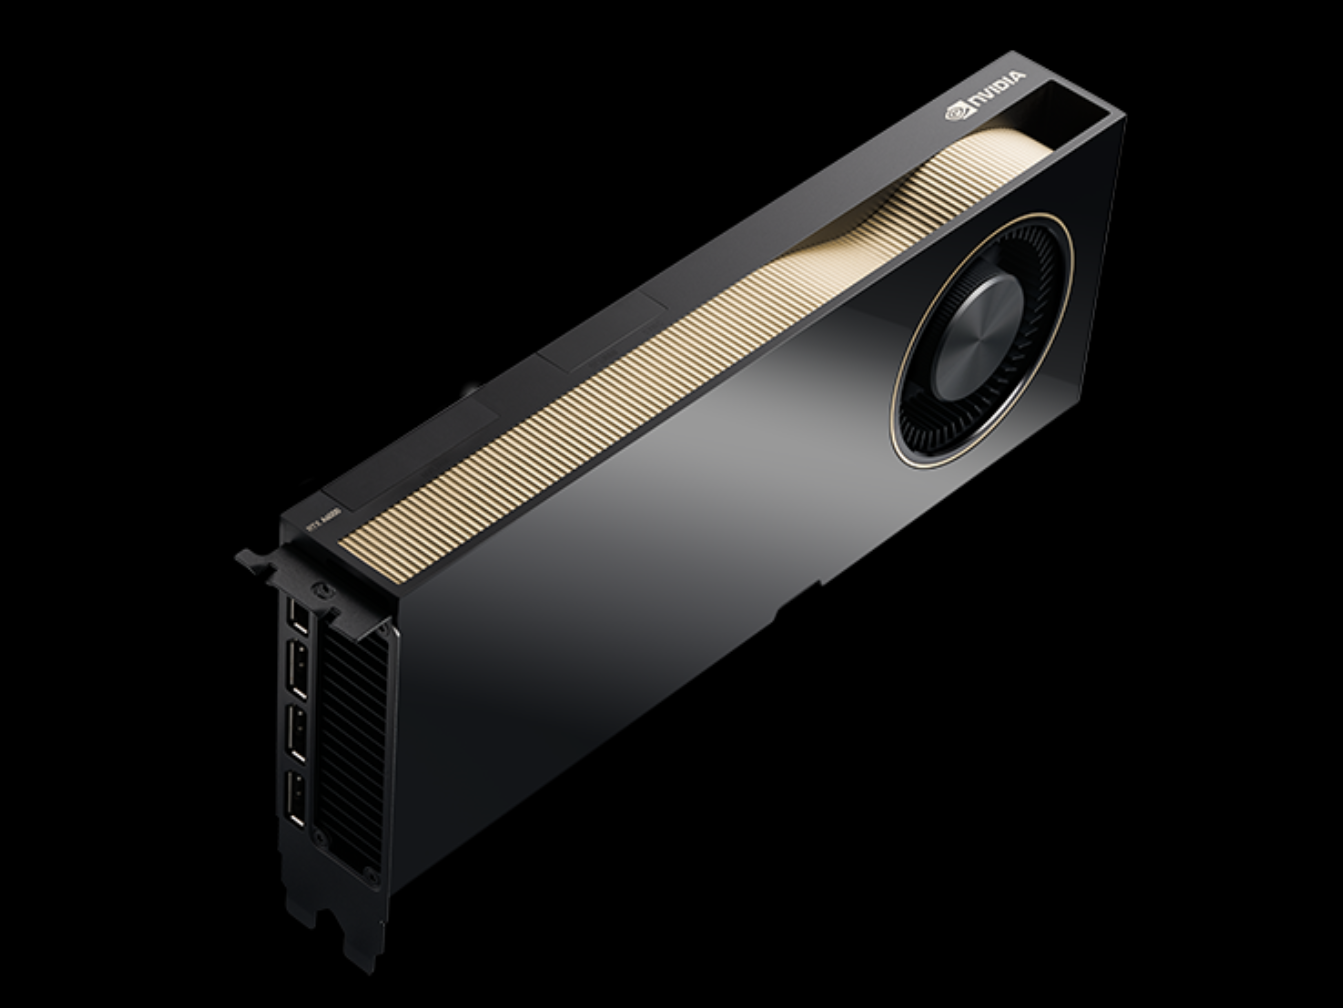 nvidia-rtx-a6000-48-gb-workstation-graphics-card-unveiled,-features-full-ga102-gpu-for-$4650-us